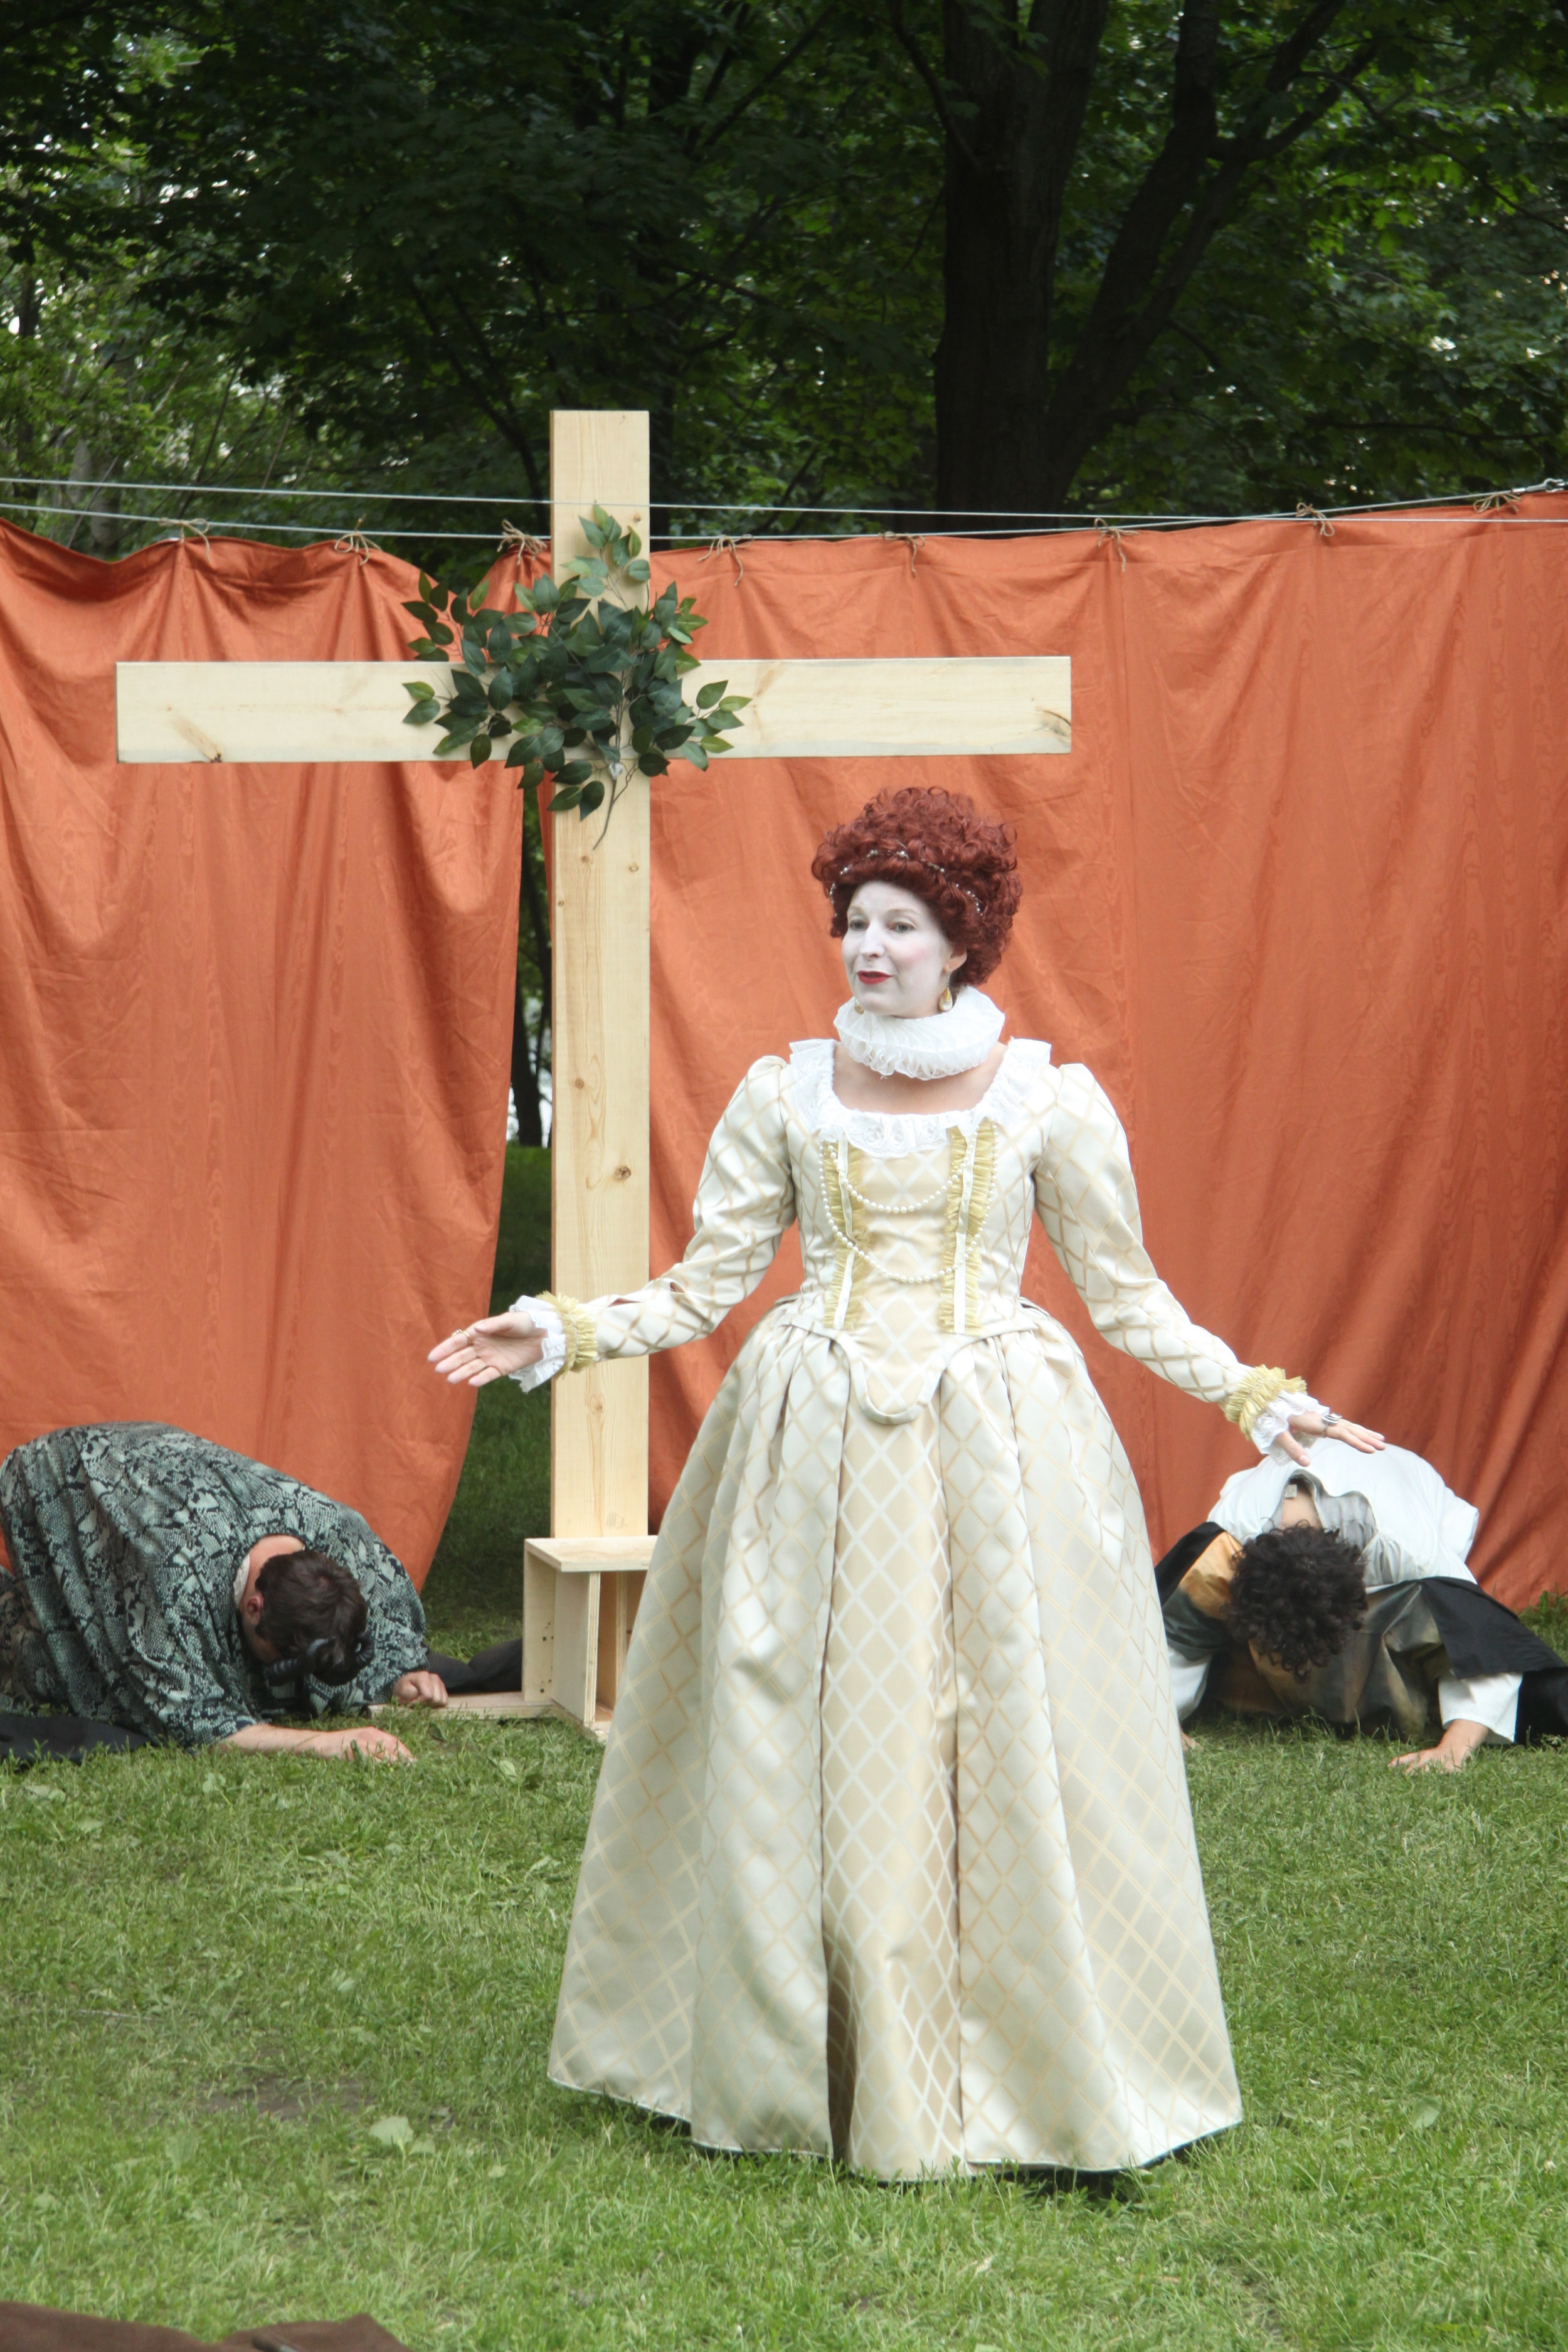 Maev Beaty as Queen Elizabeth in Passion Play (Part One)